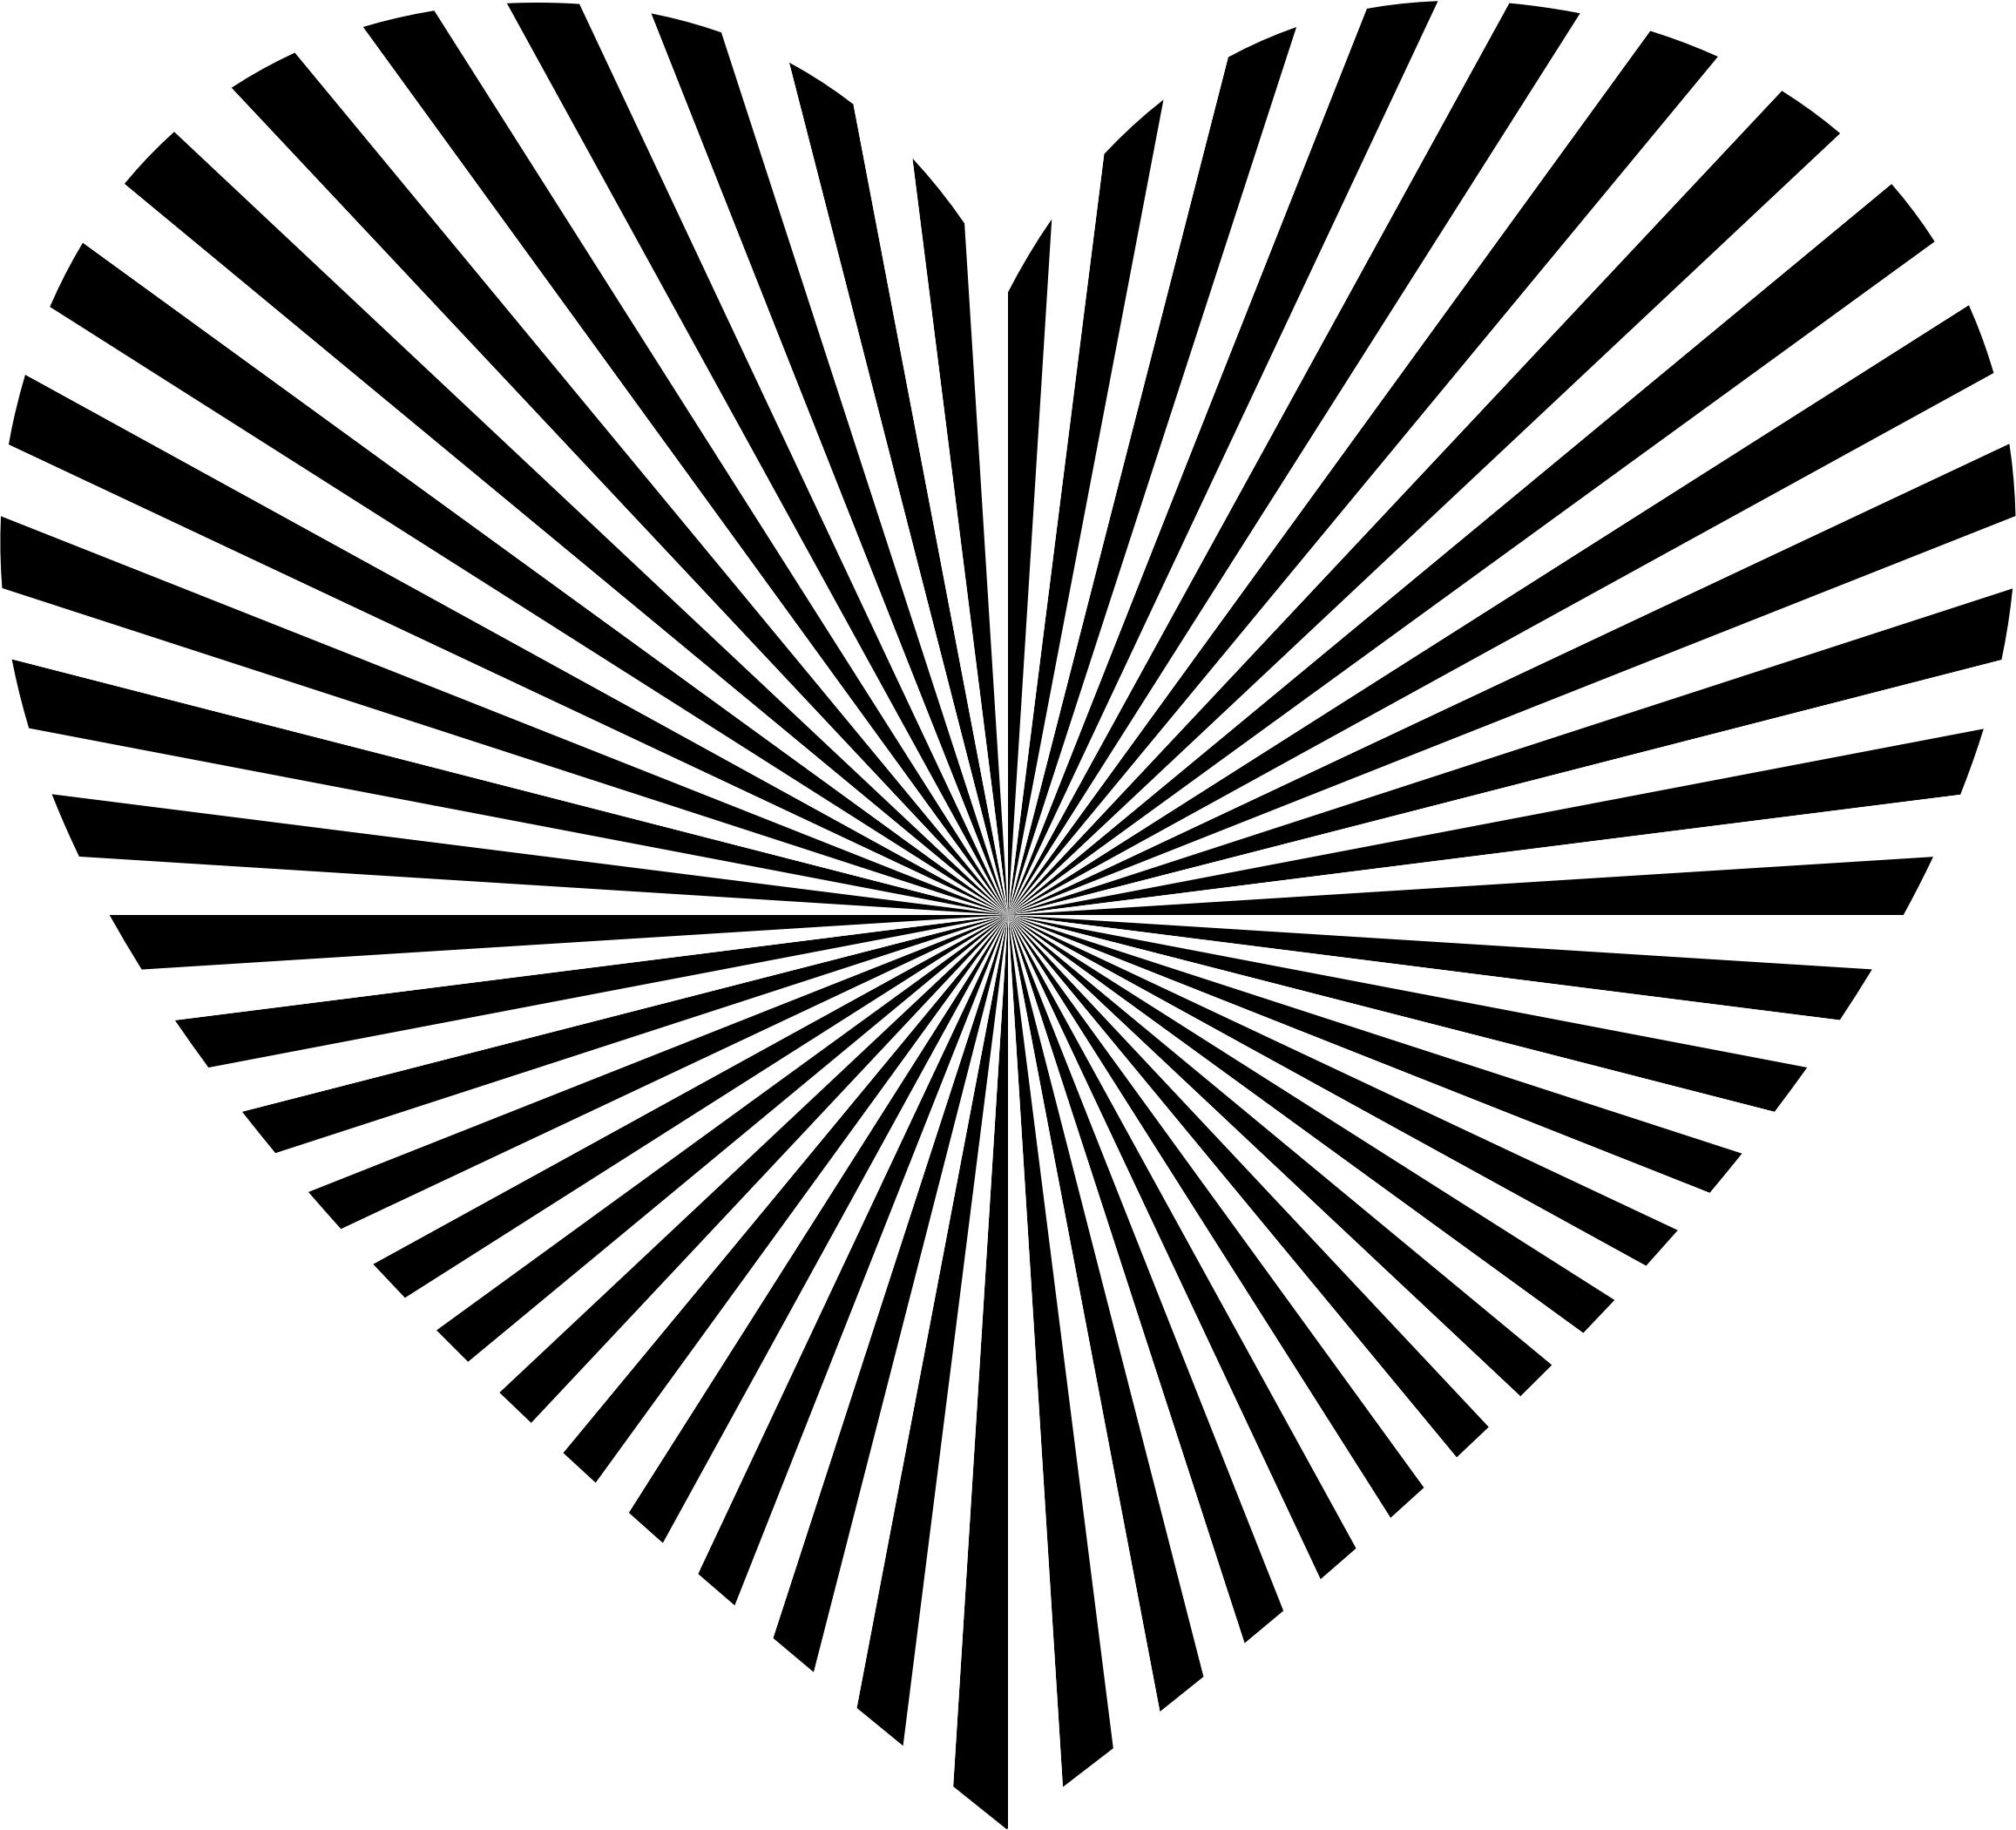 Basketball heart clipart black and white clipart library Starburst Clipart | Free download best Starburst Clipart on ... clipart library